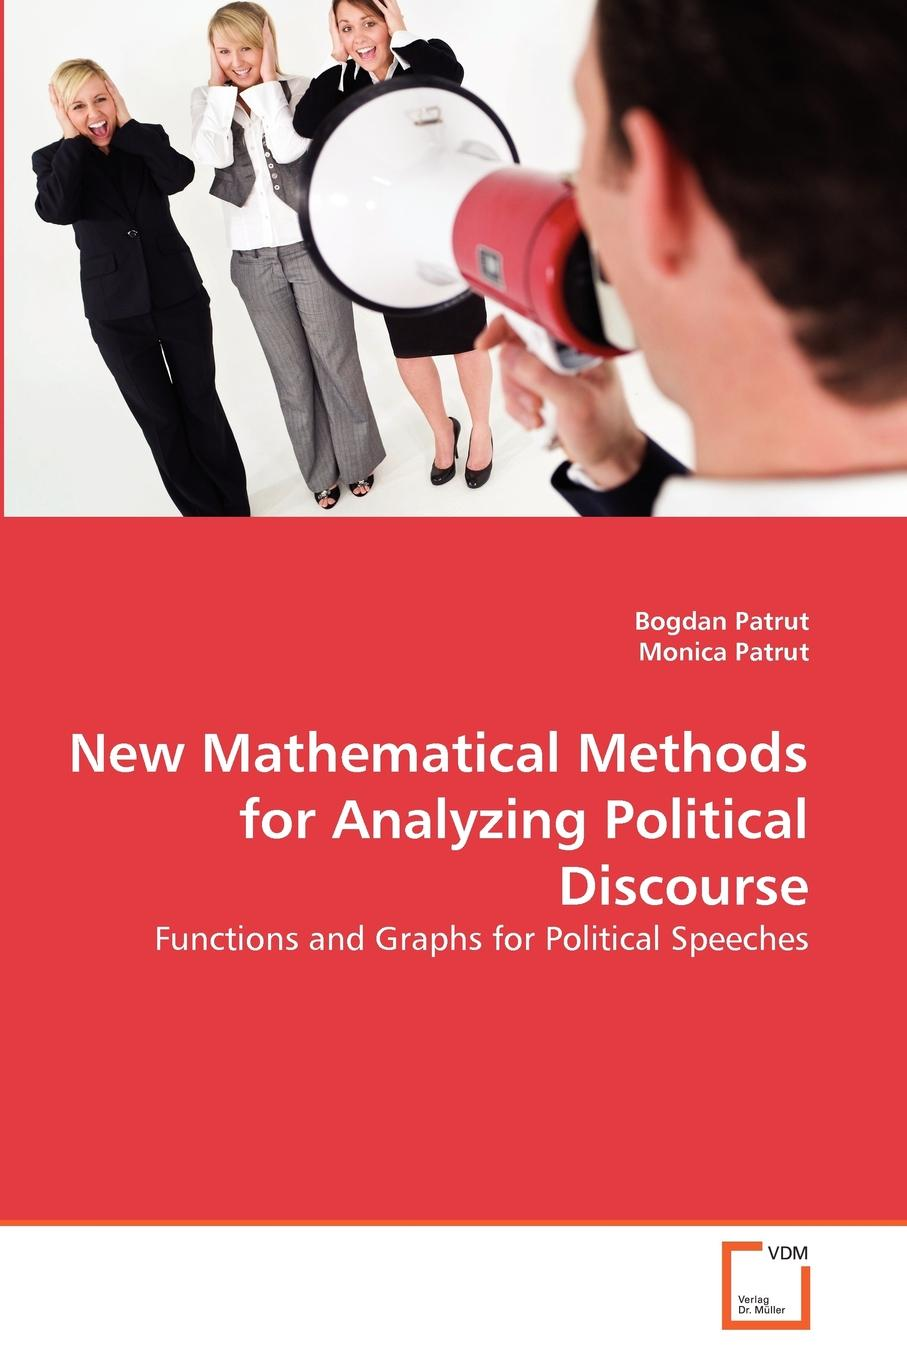 Bogdan Patrut, Monica Patrut New Mathematical Methods for Analyzing Political Discourse monica patrut and bogdan patrut web 2 0 in education and politics